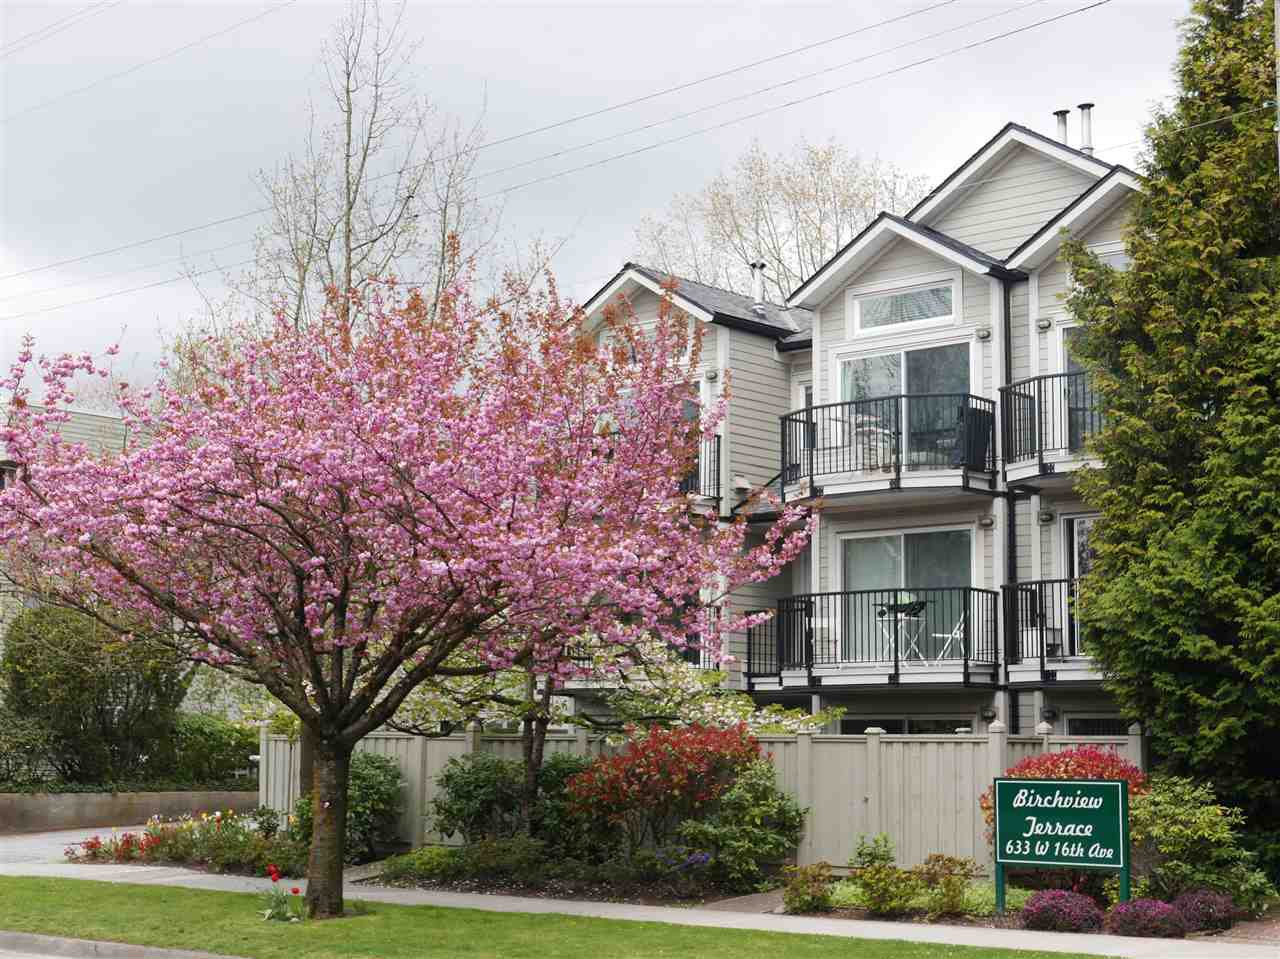 "Photo 6: Photos: 102 633 W 16 Avenue in Vancouver: Fairview VW Condo for sale in ""Birchview Terrace"" (Vancouver West)  : MLS®# R2163651"